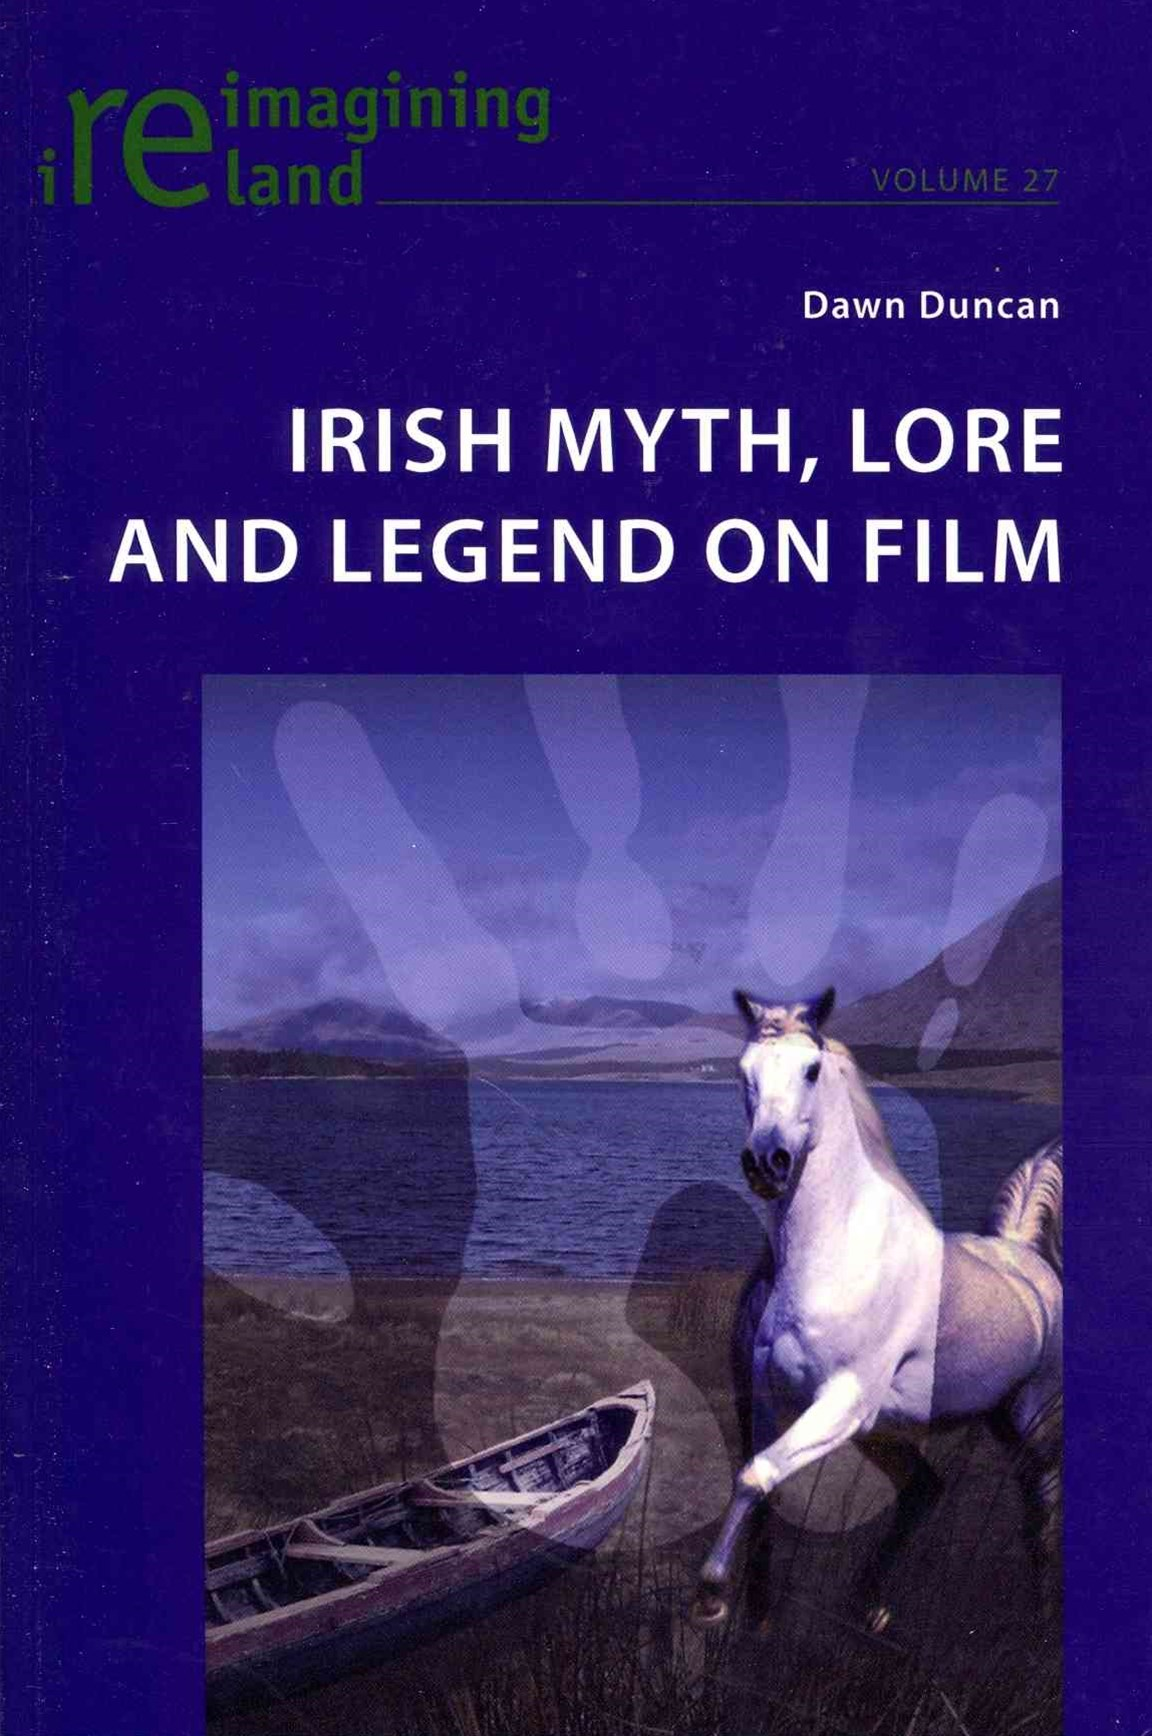 Irish Myth, Lore and Legend on Film